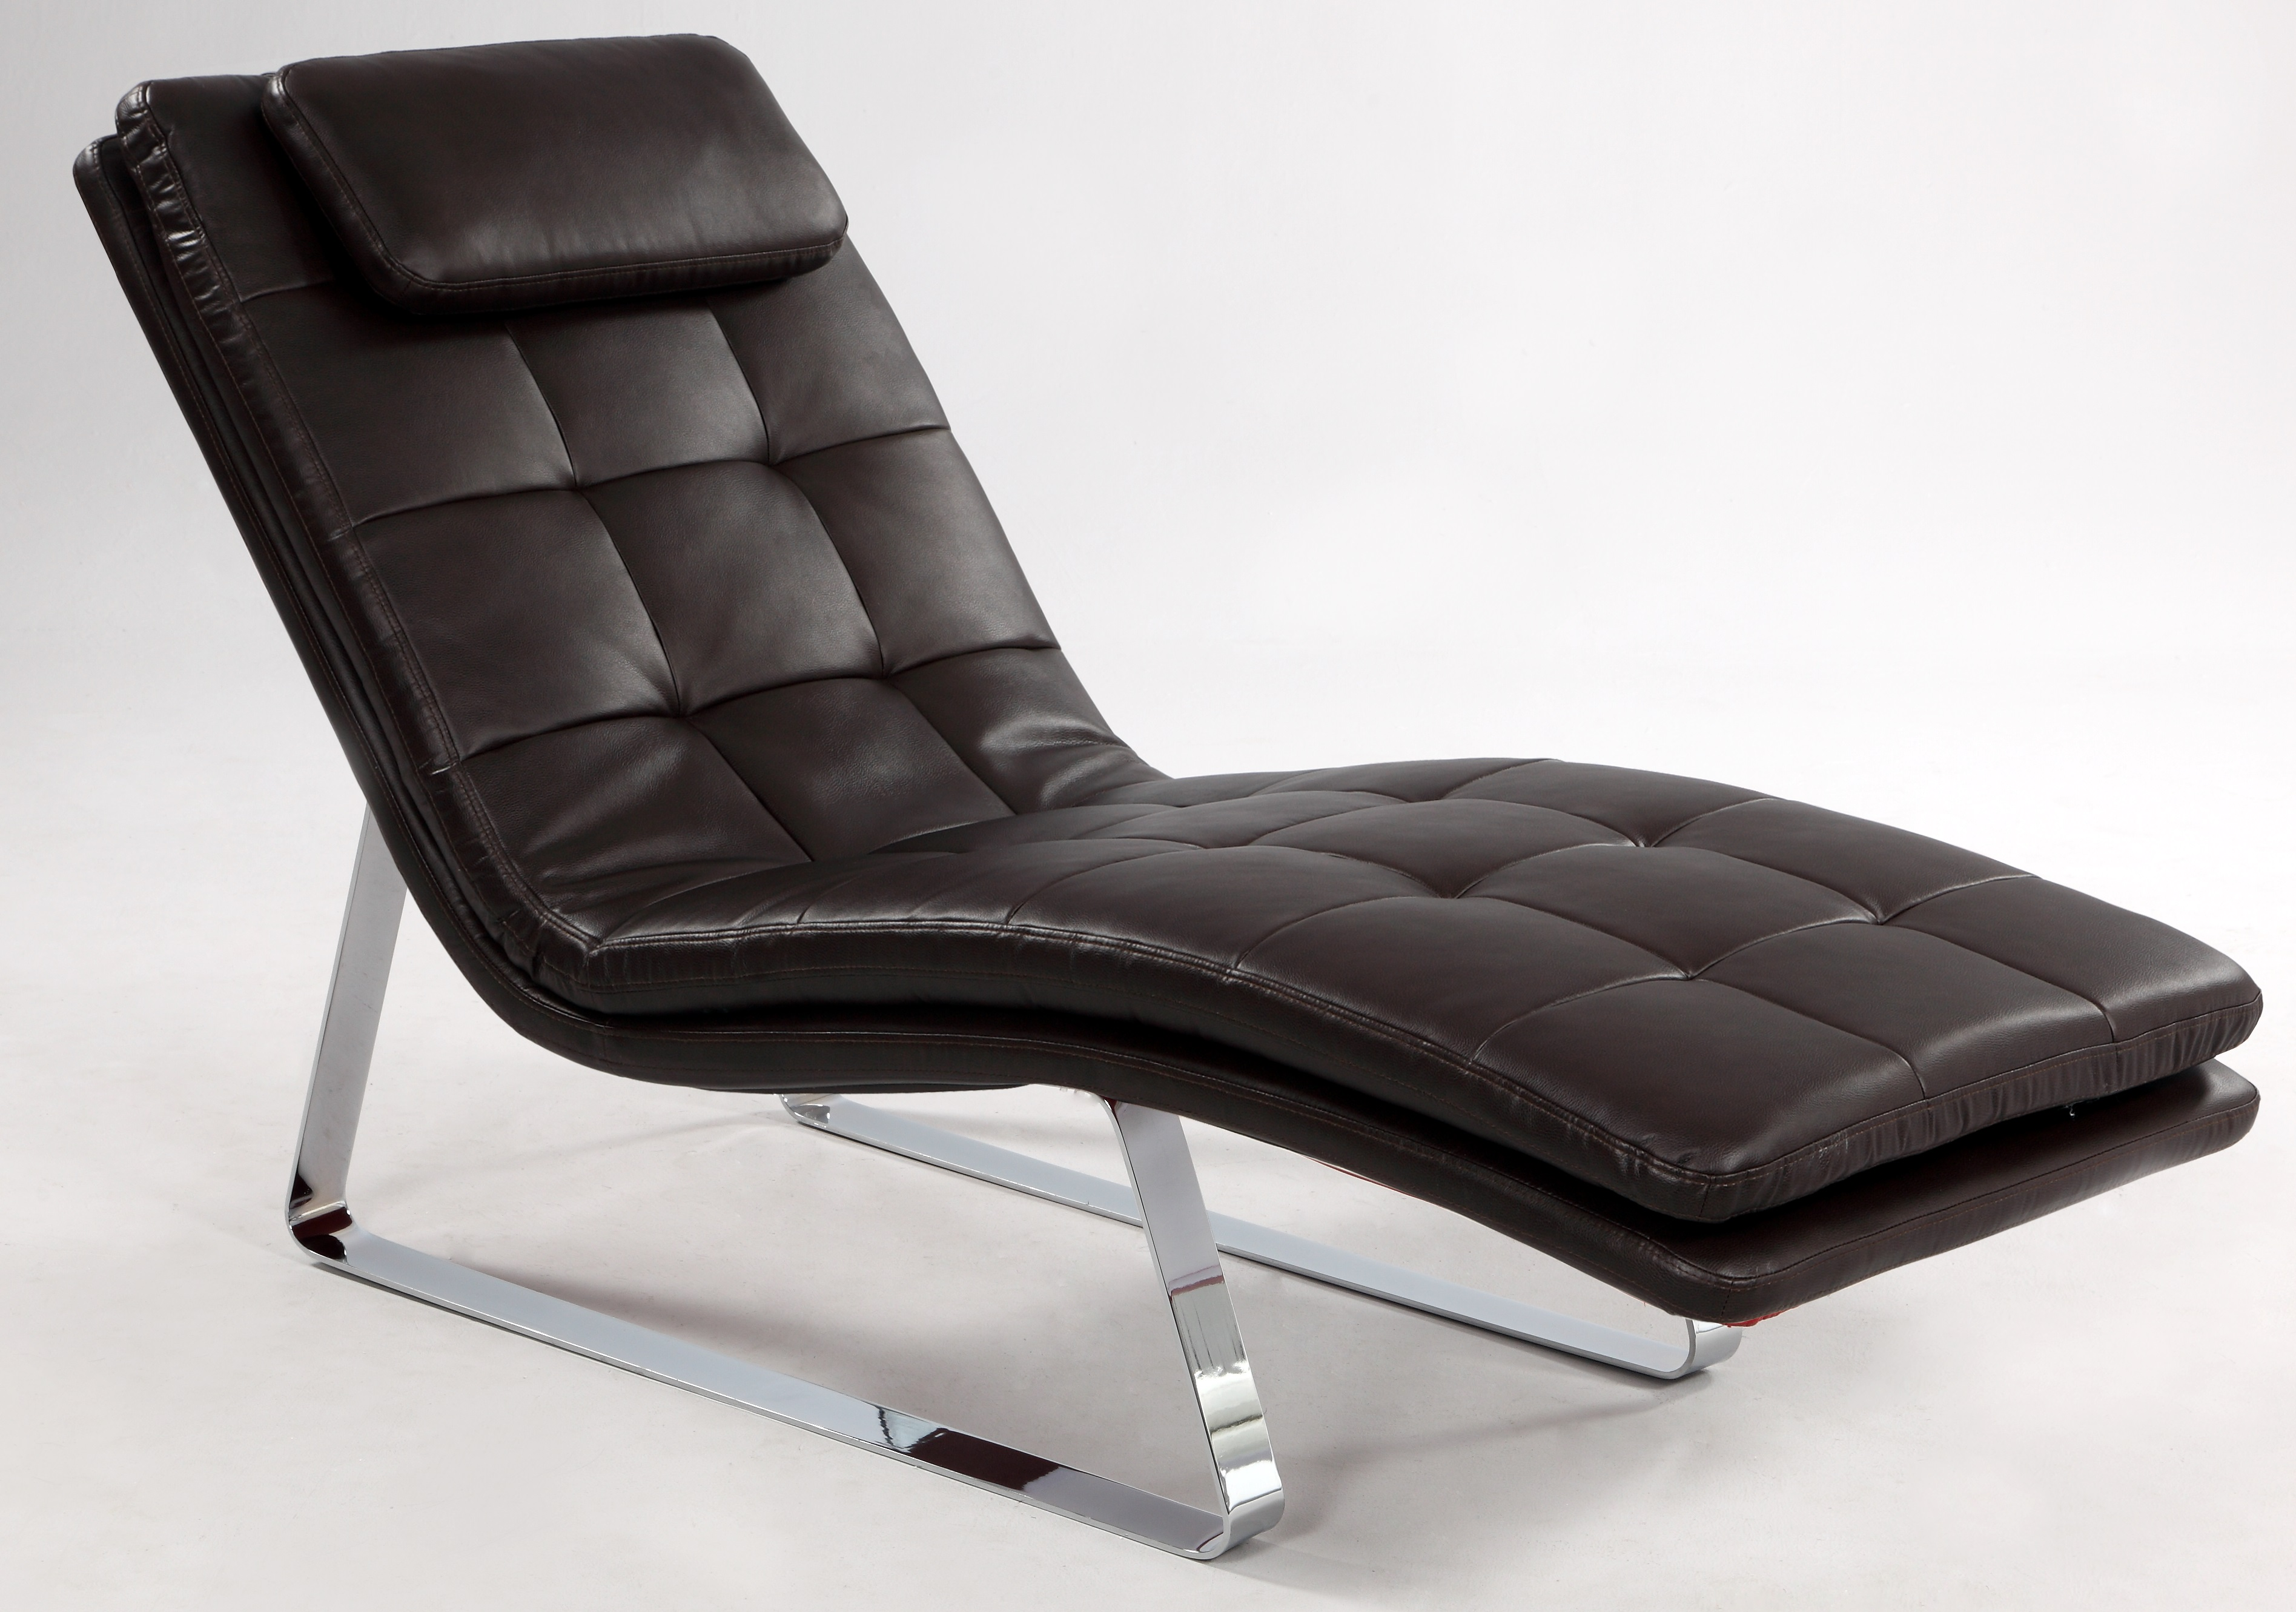 Full bonded leather tufted chaise lounge with chrome legs for Chaise for sale